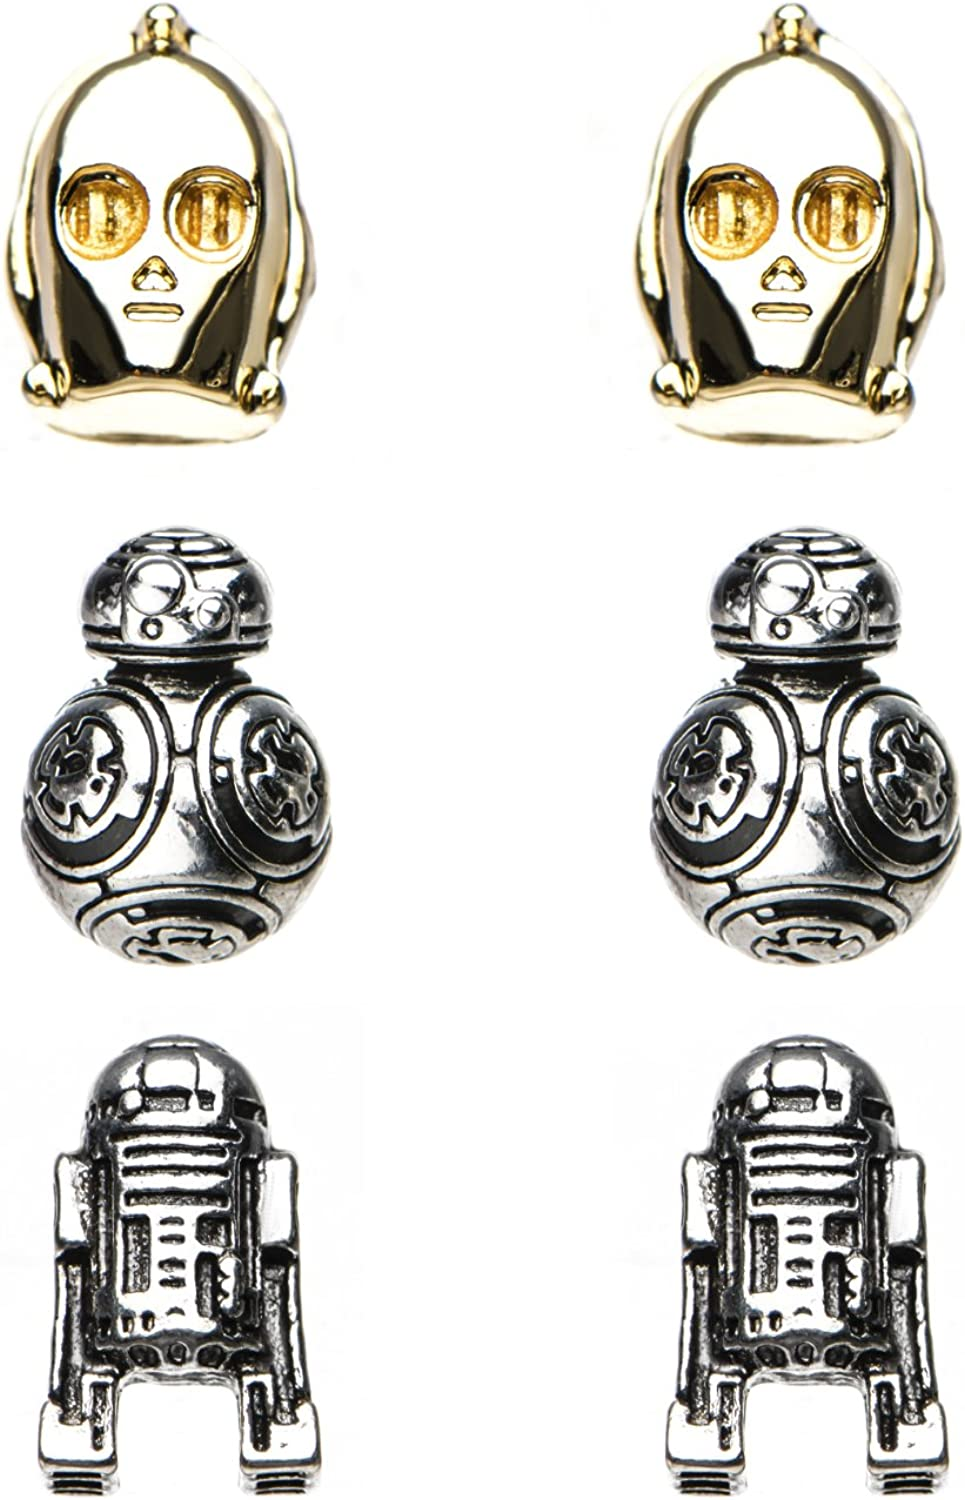 Star Wars Jewelry Unisex Adult Episode 8 BB-8, C-3PO and R2-D2 Stud Earrings Set, Gold/Silver, One Size